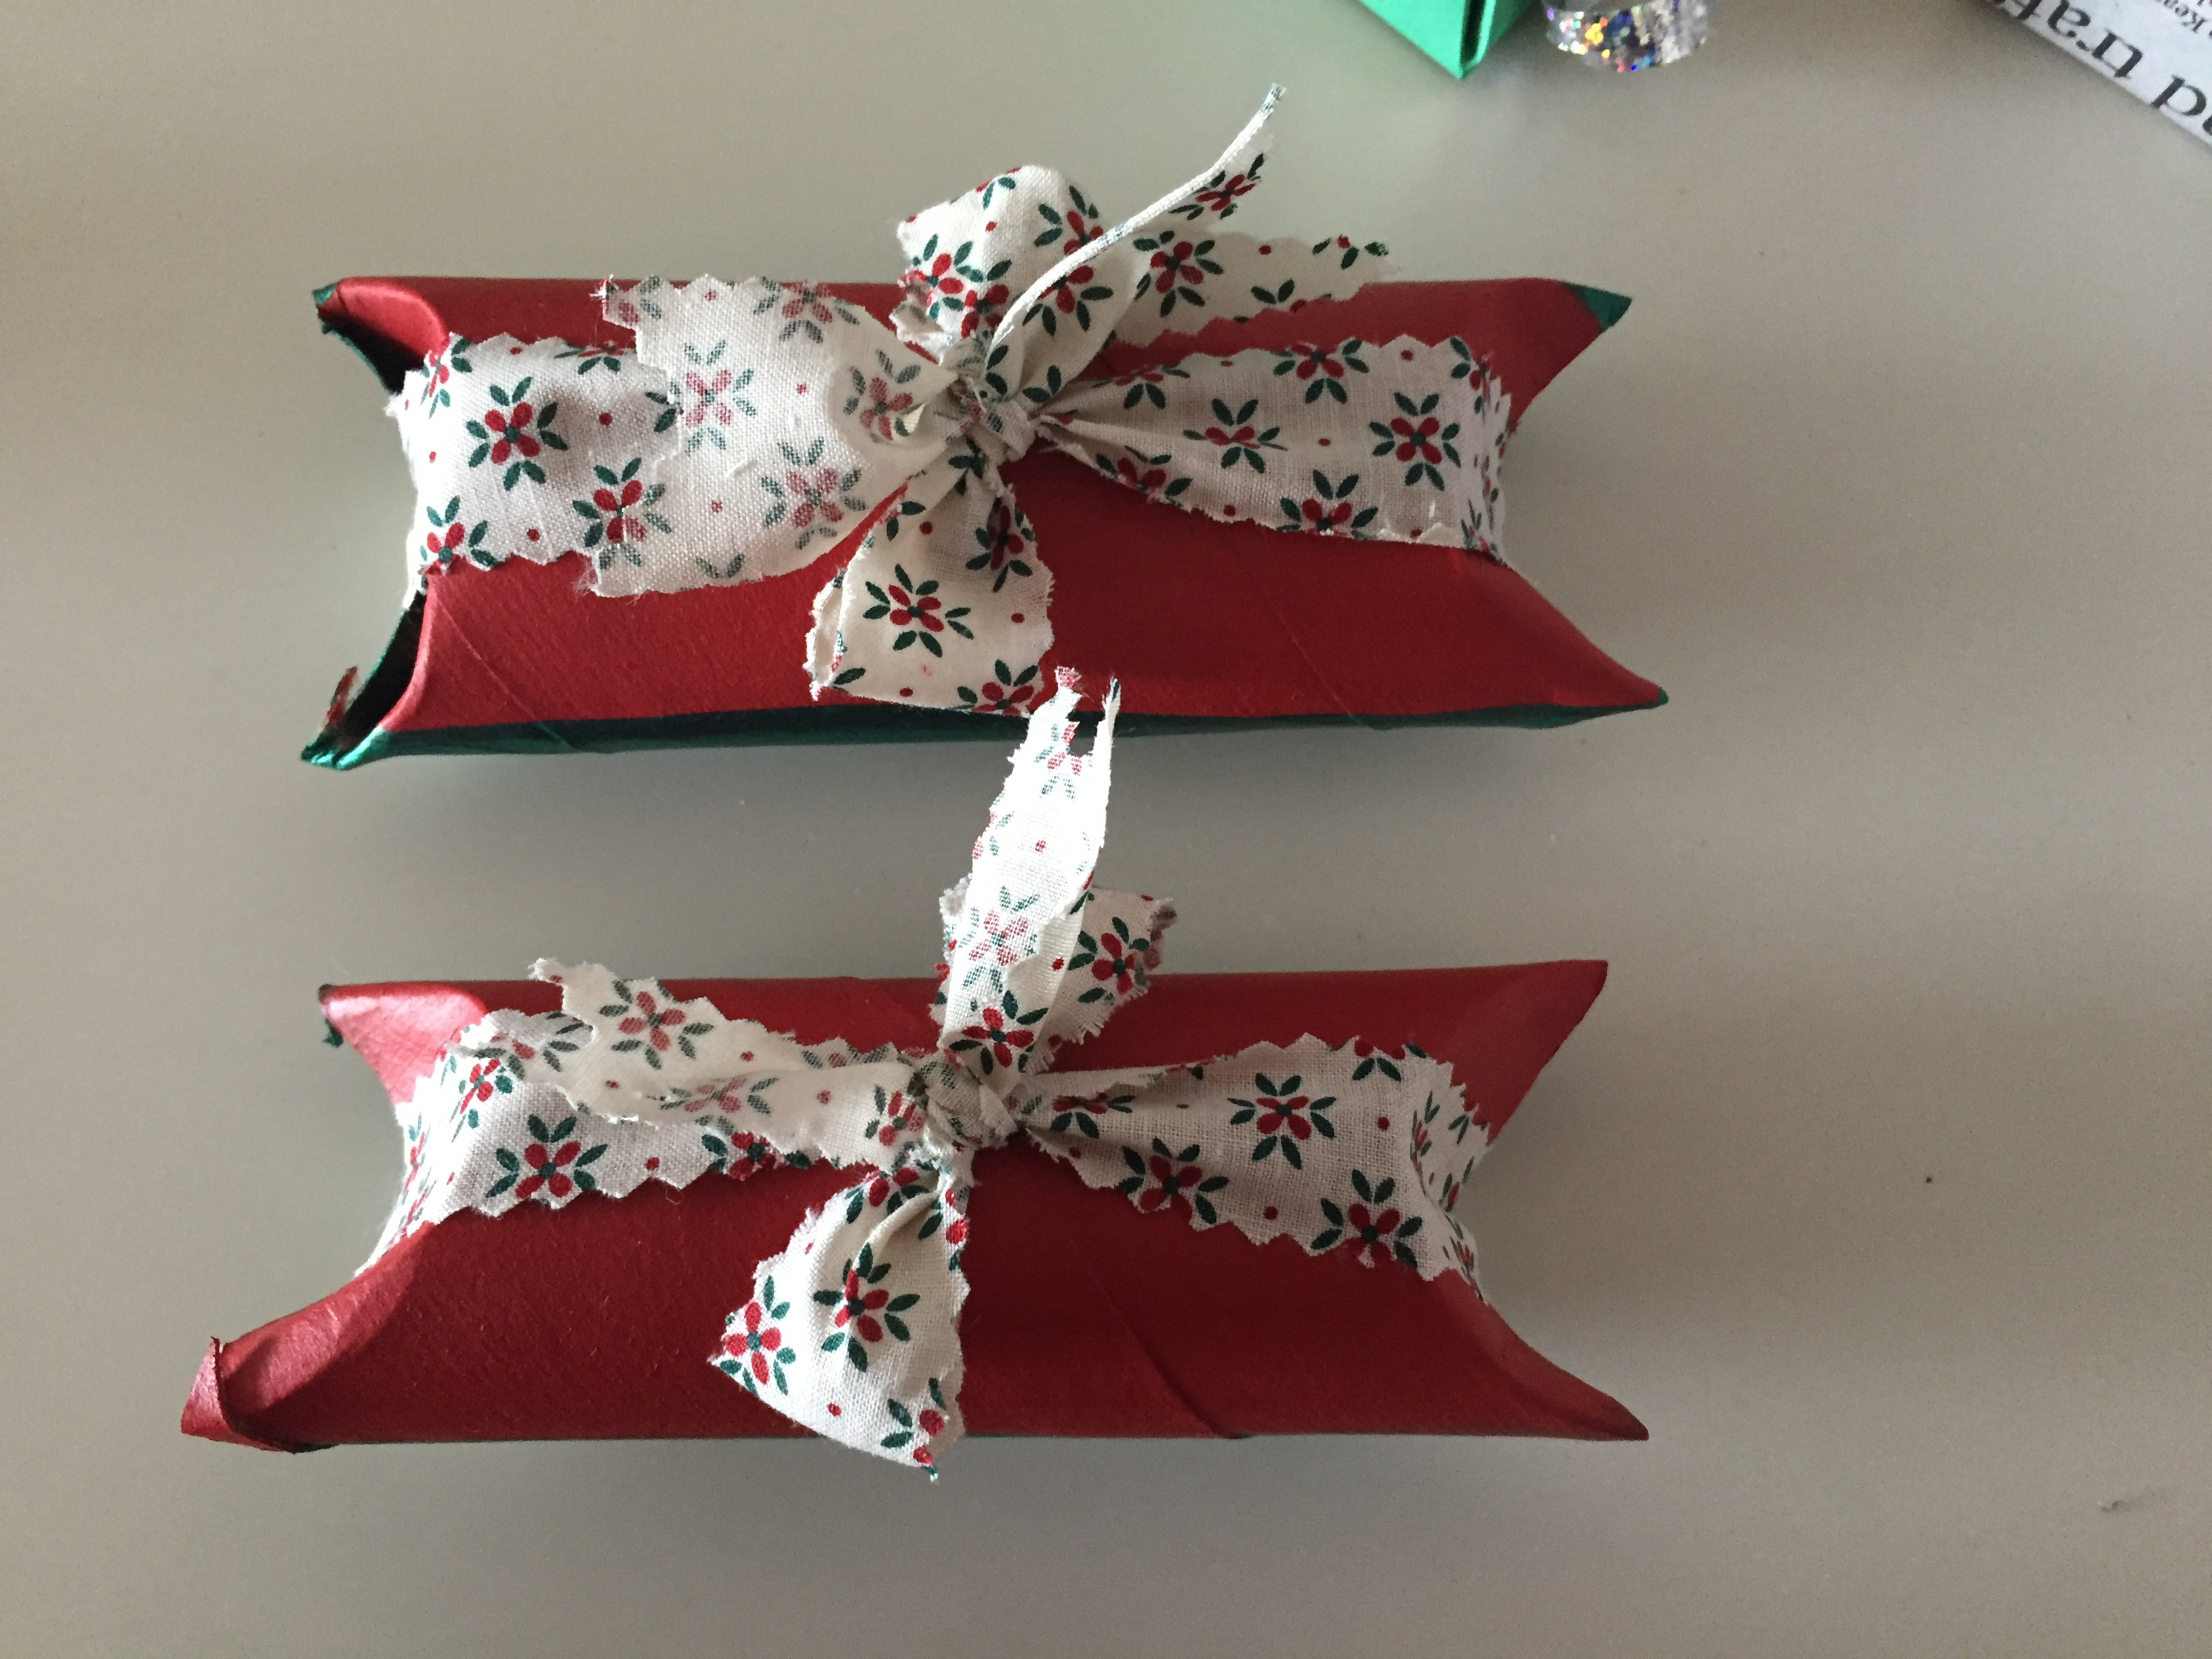 Wrapping your small gift with paper towel roll is a good way to recycle it.